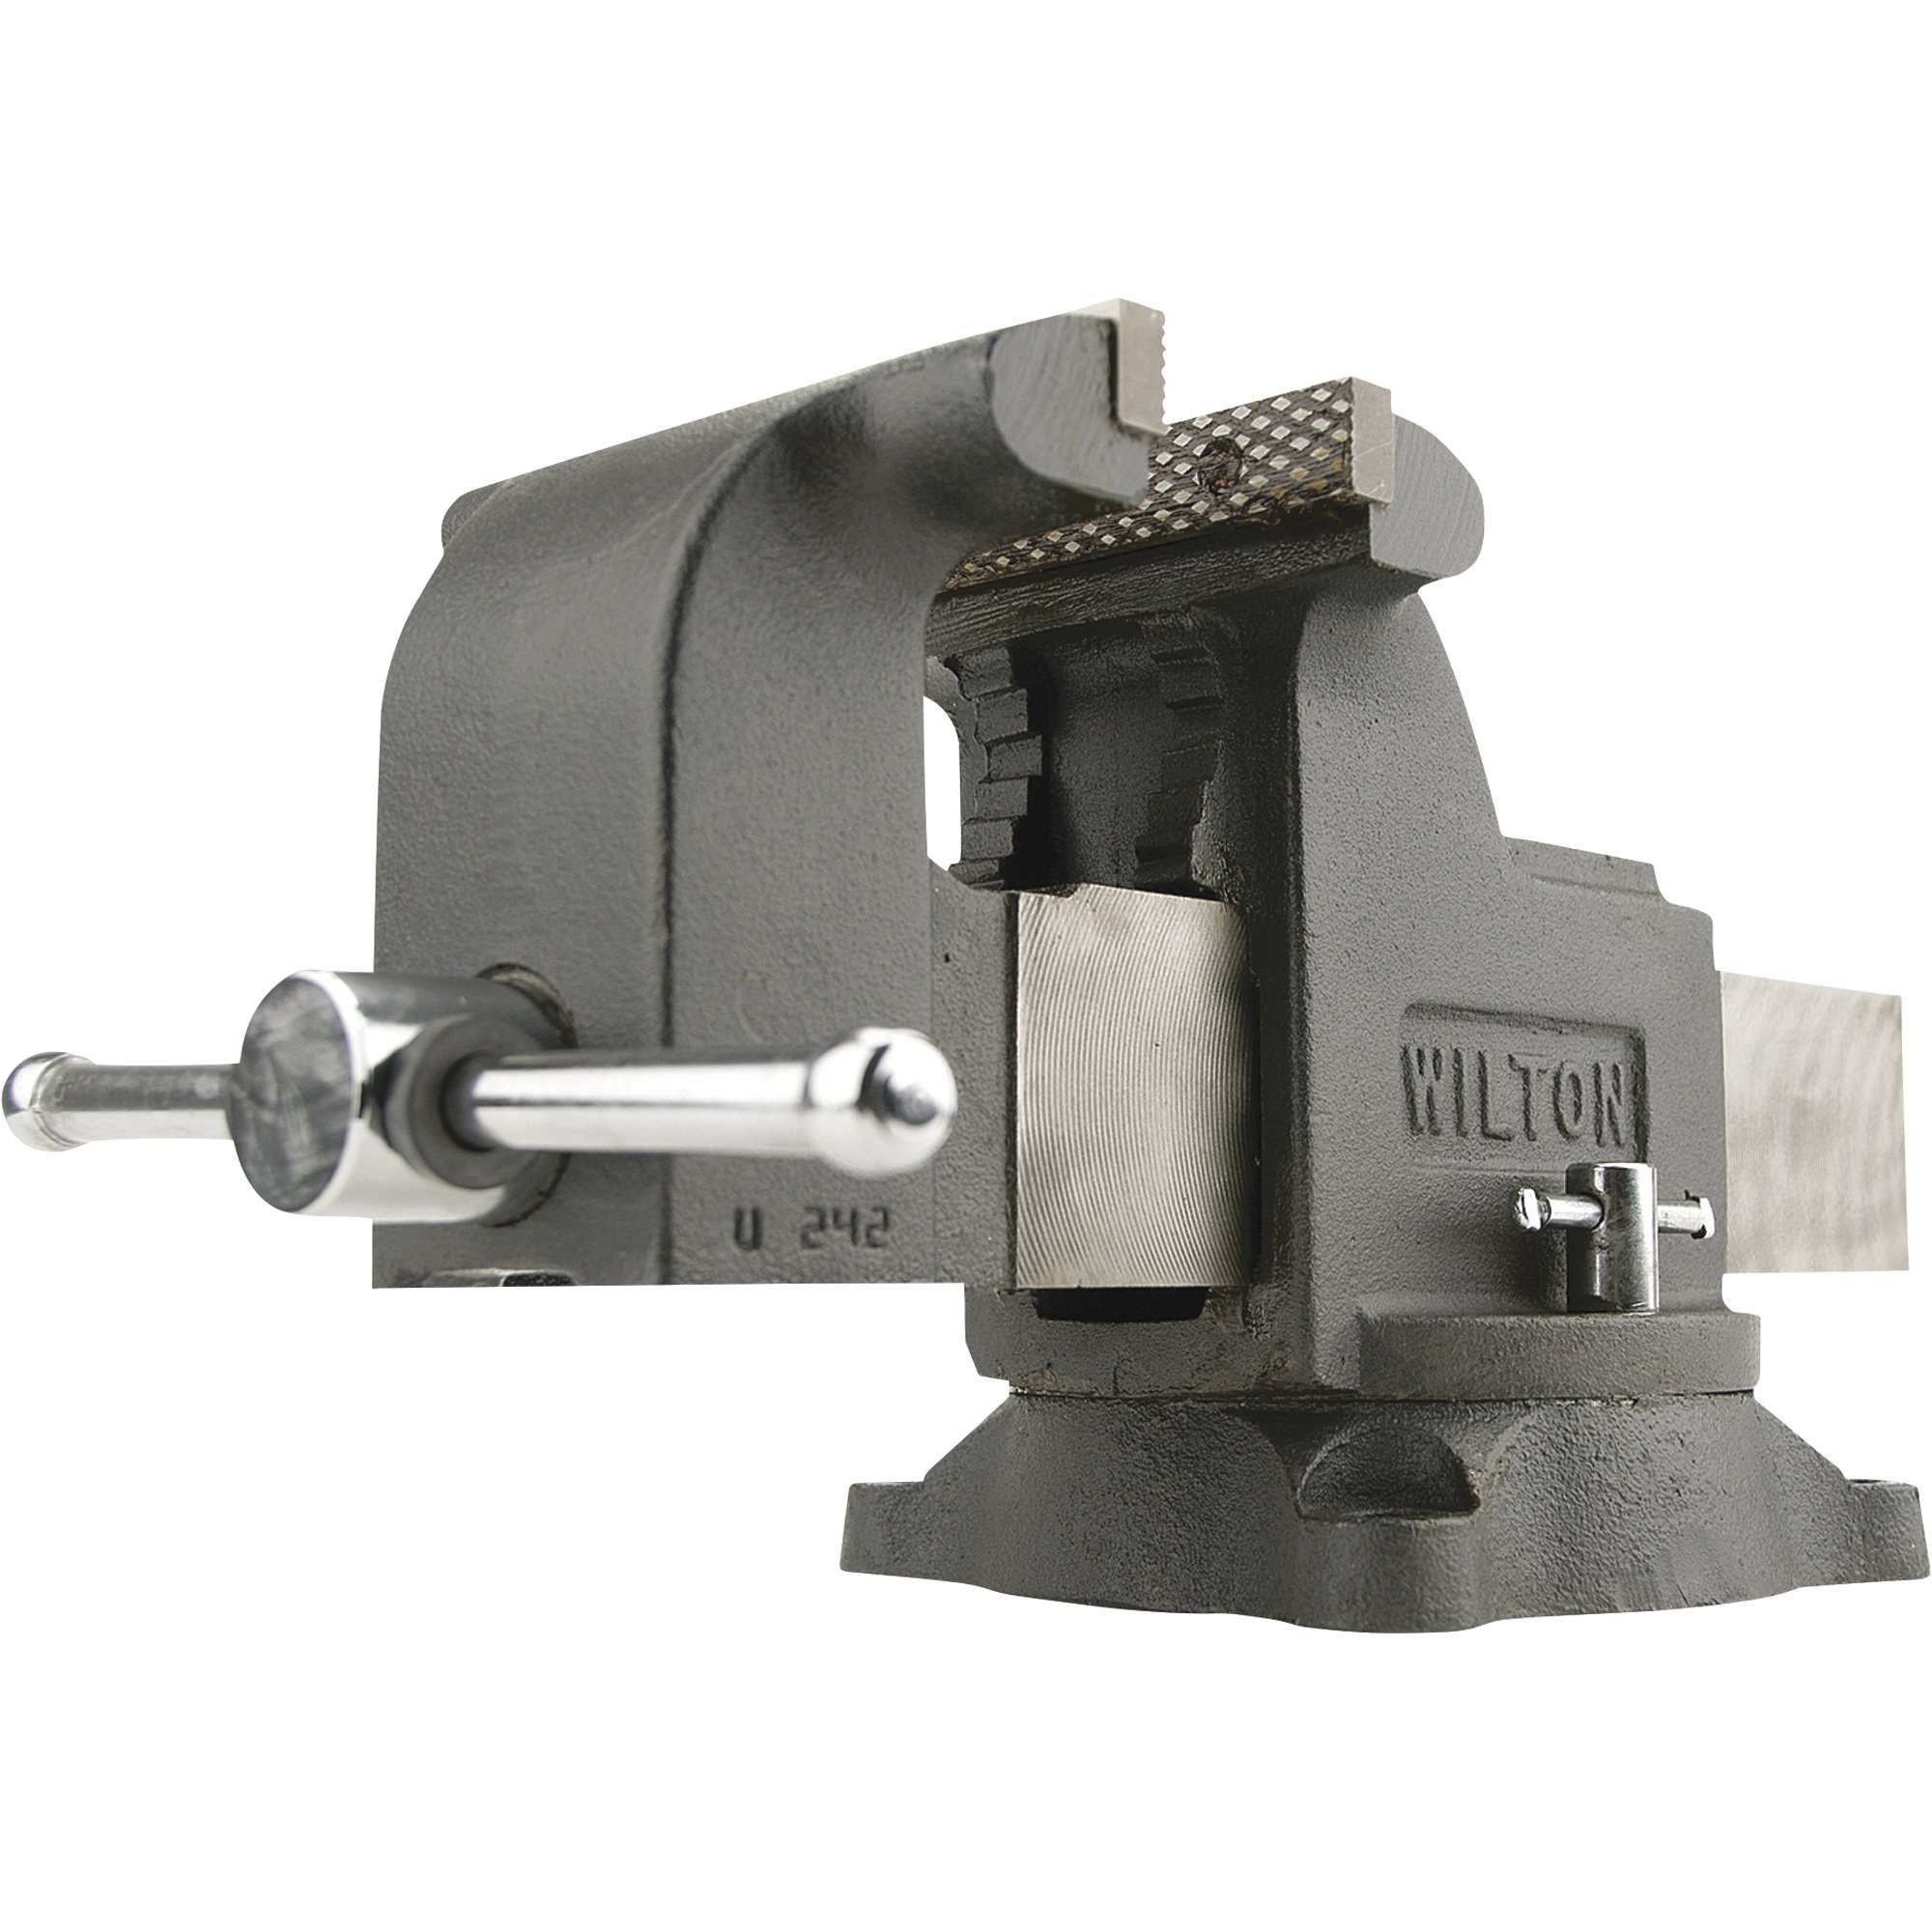 Merveilleux Wilton Shop Bench Vise U2014 8in. Jaw Width, Model# WS8